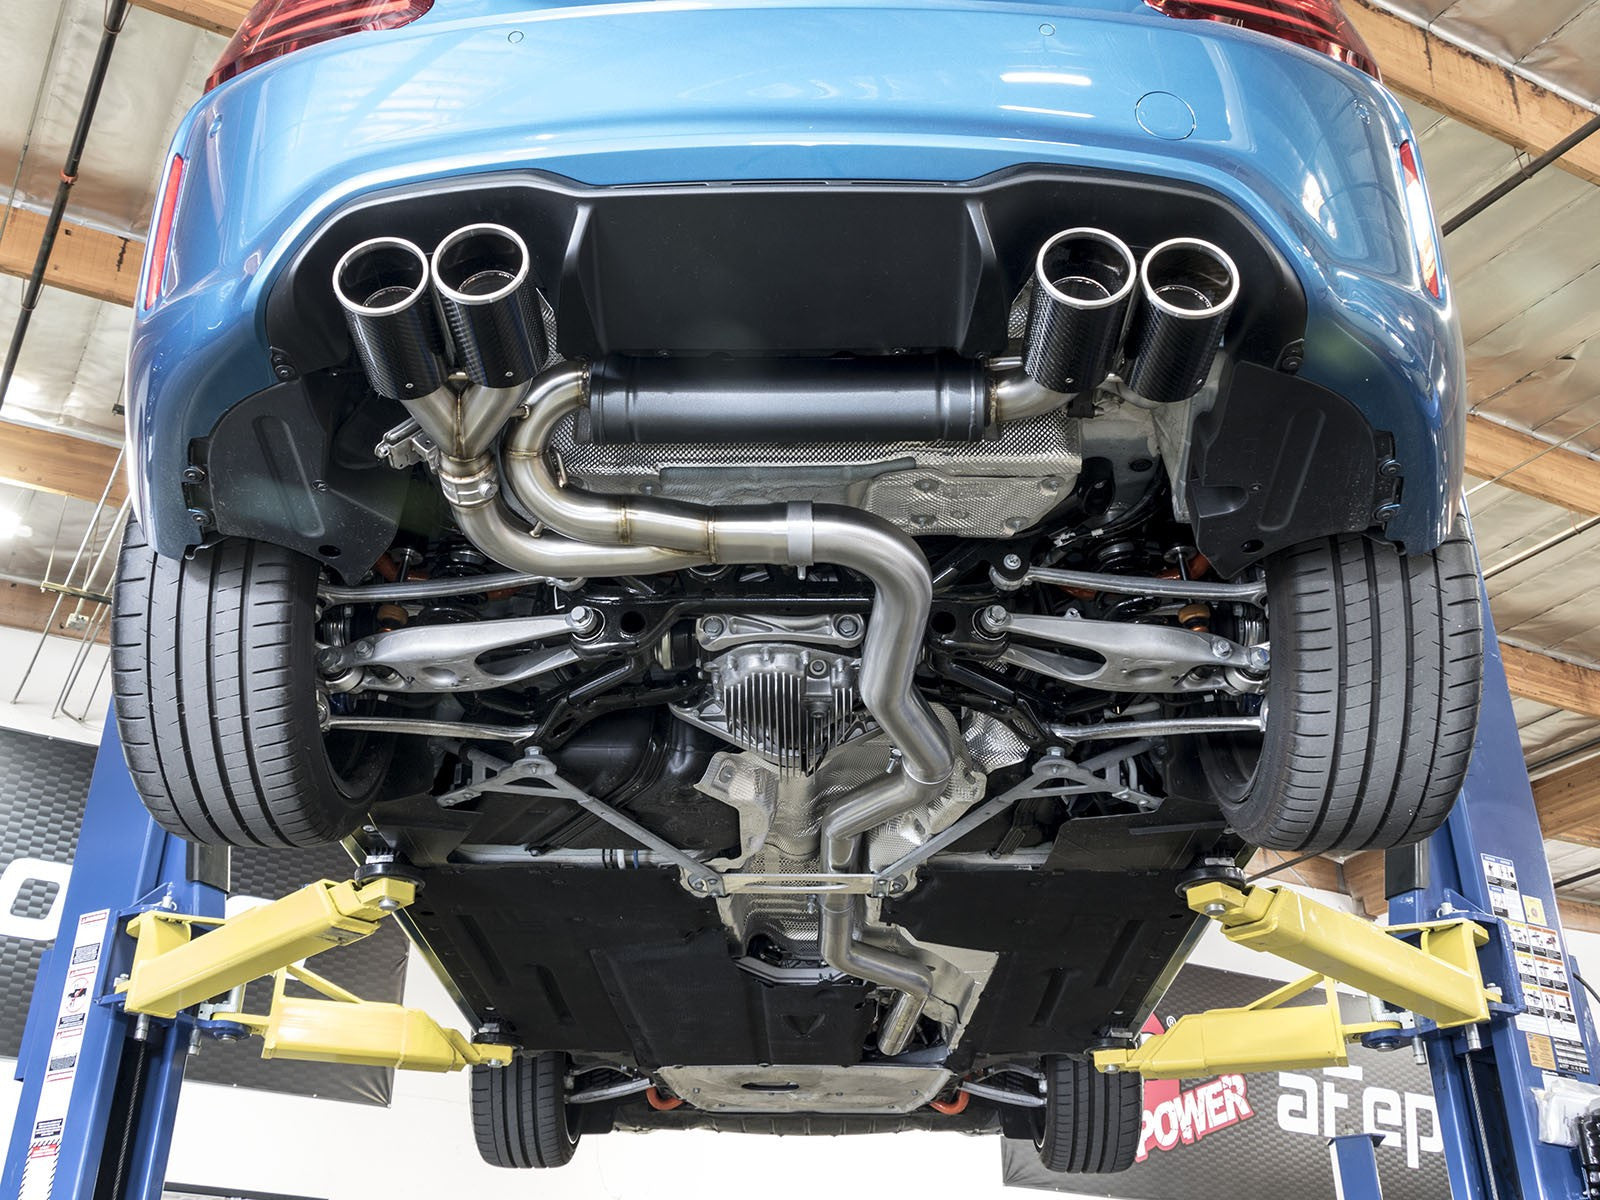 aFe POWER MACH Force-Xp M2 Exhaust System - Bimmer Performance Center